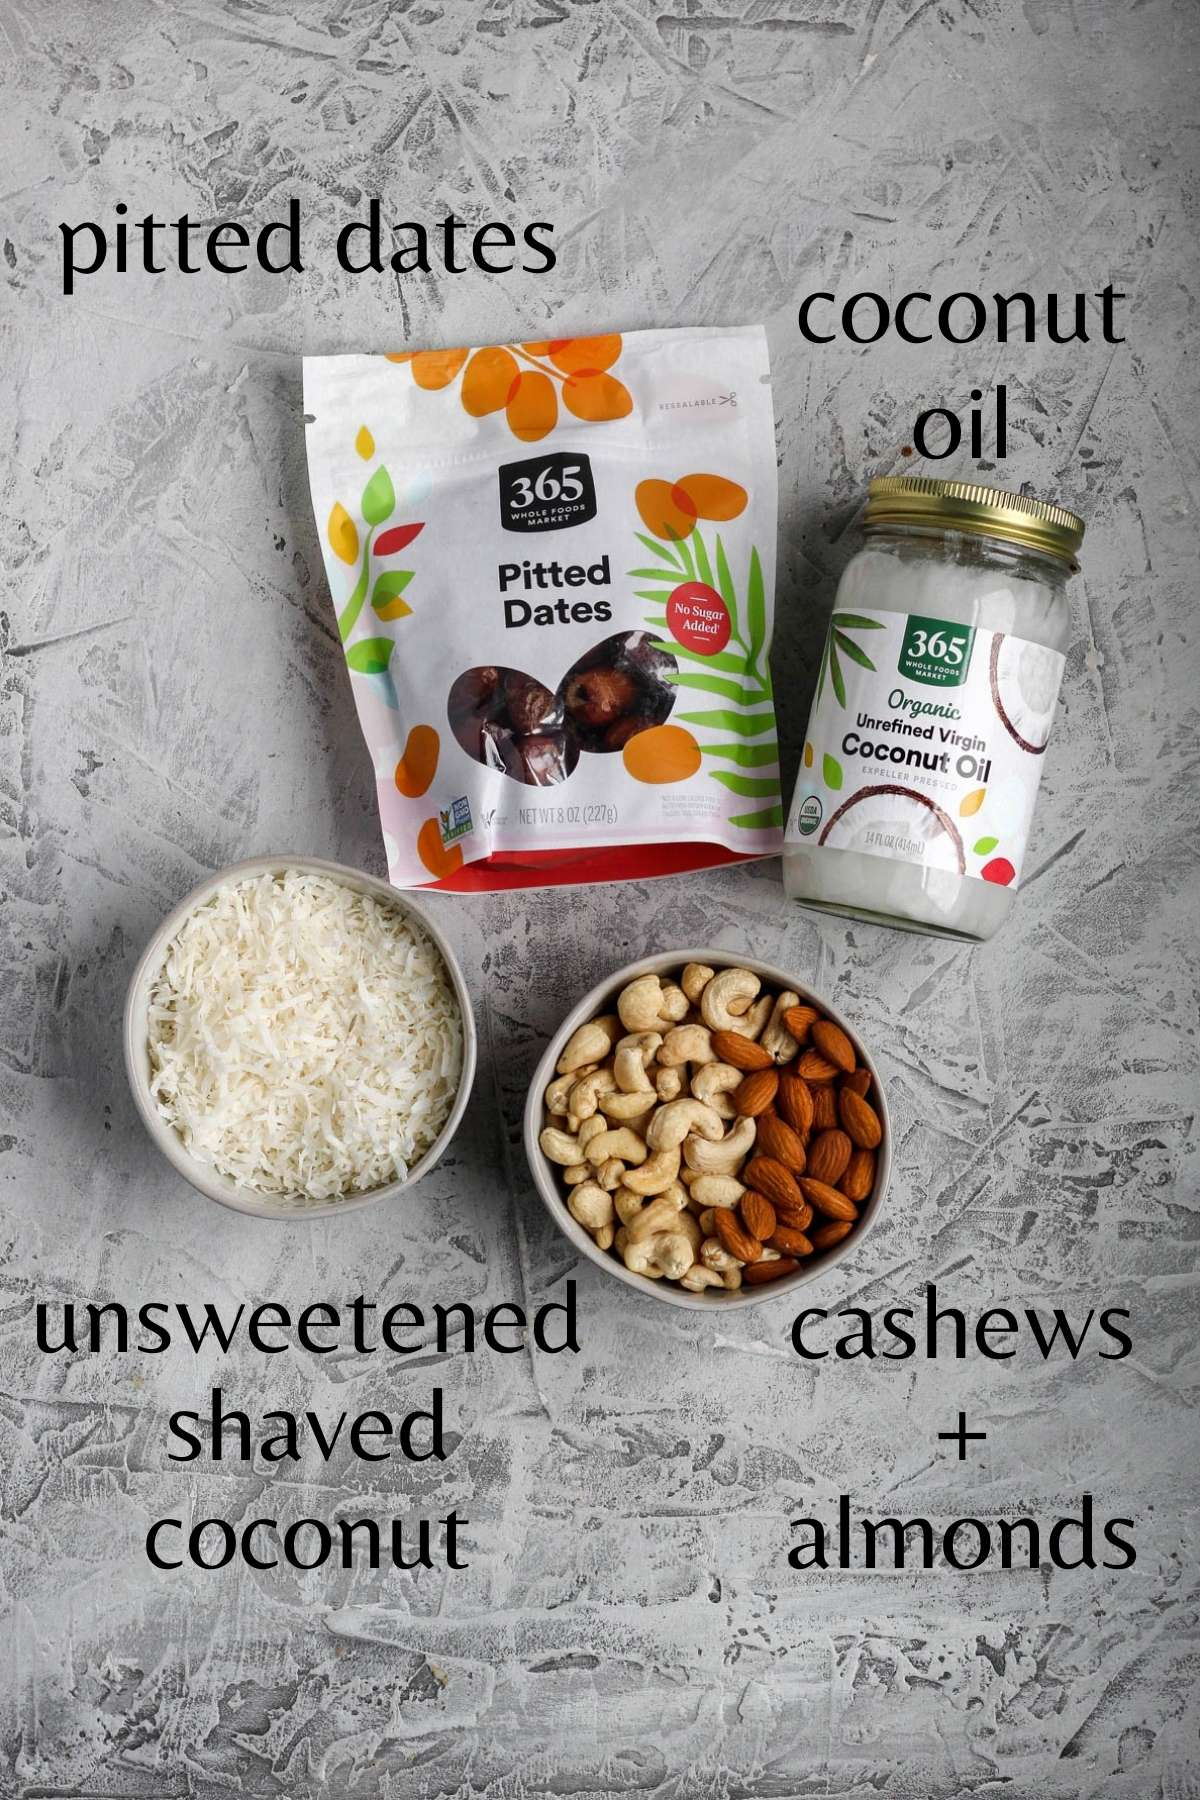 a bag of pitted dates, a jar of coconut oil, a bowl of unsweetened shaved coconut, and a bowl of cashews and almonds